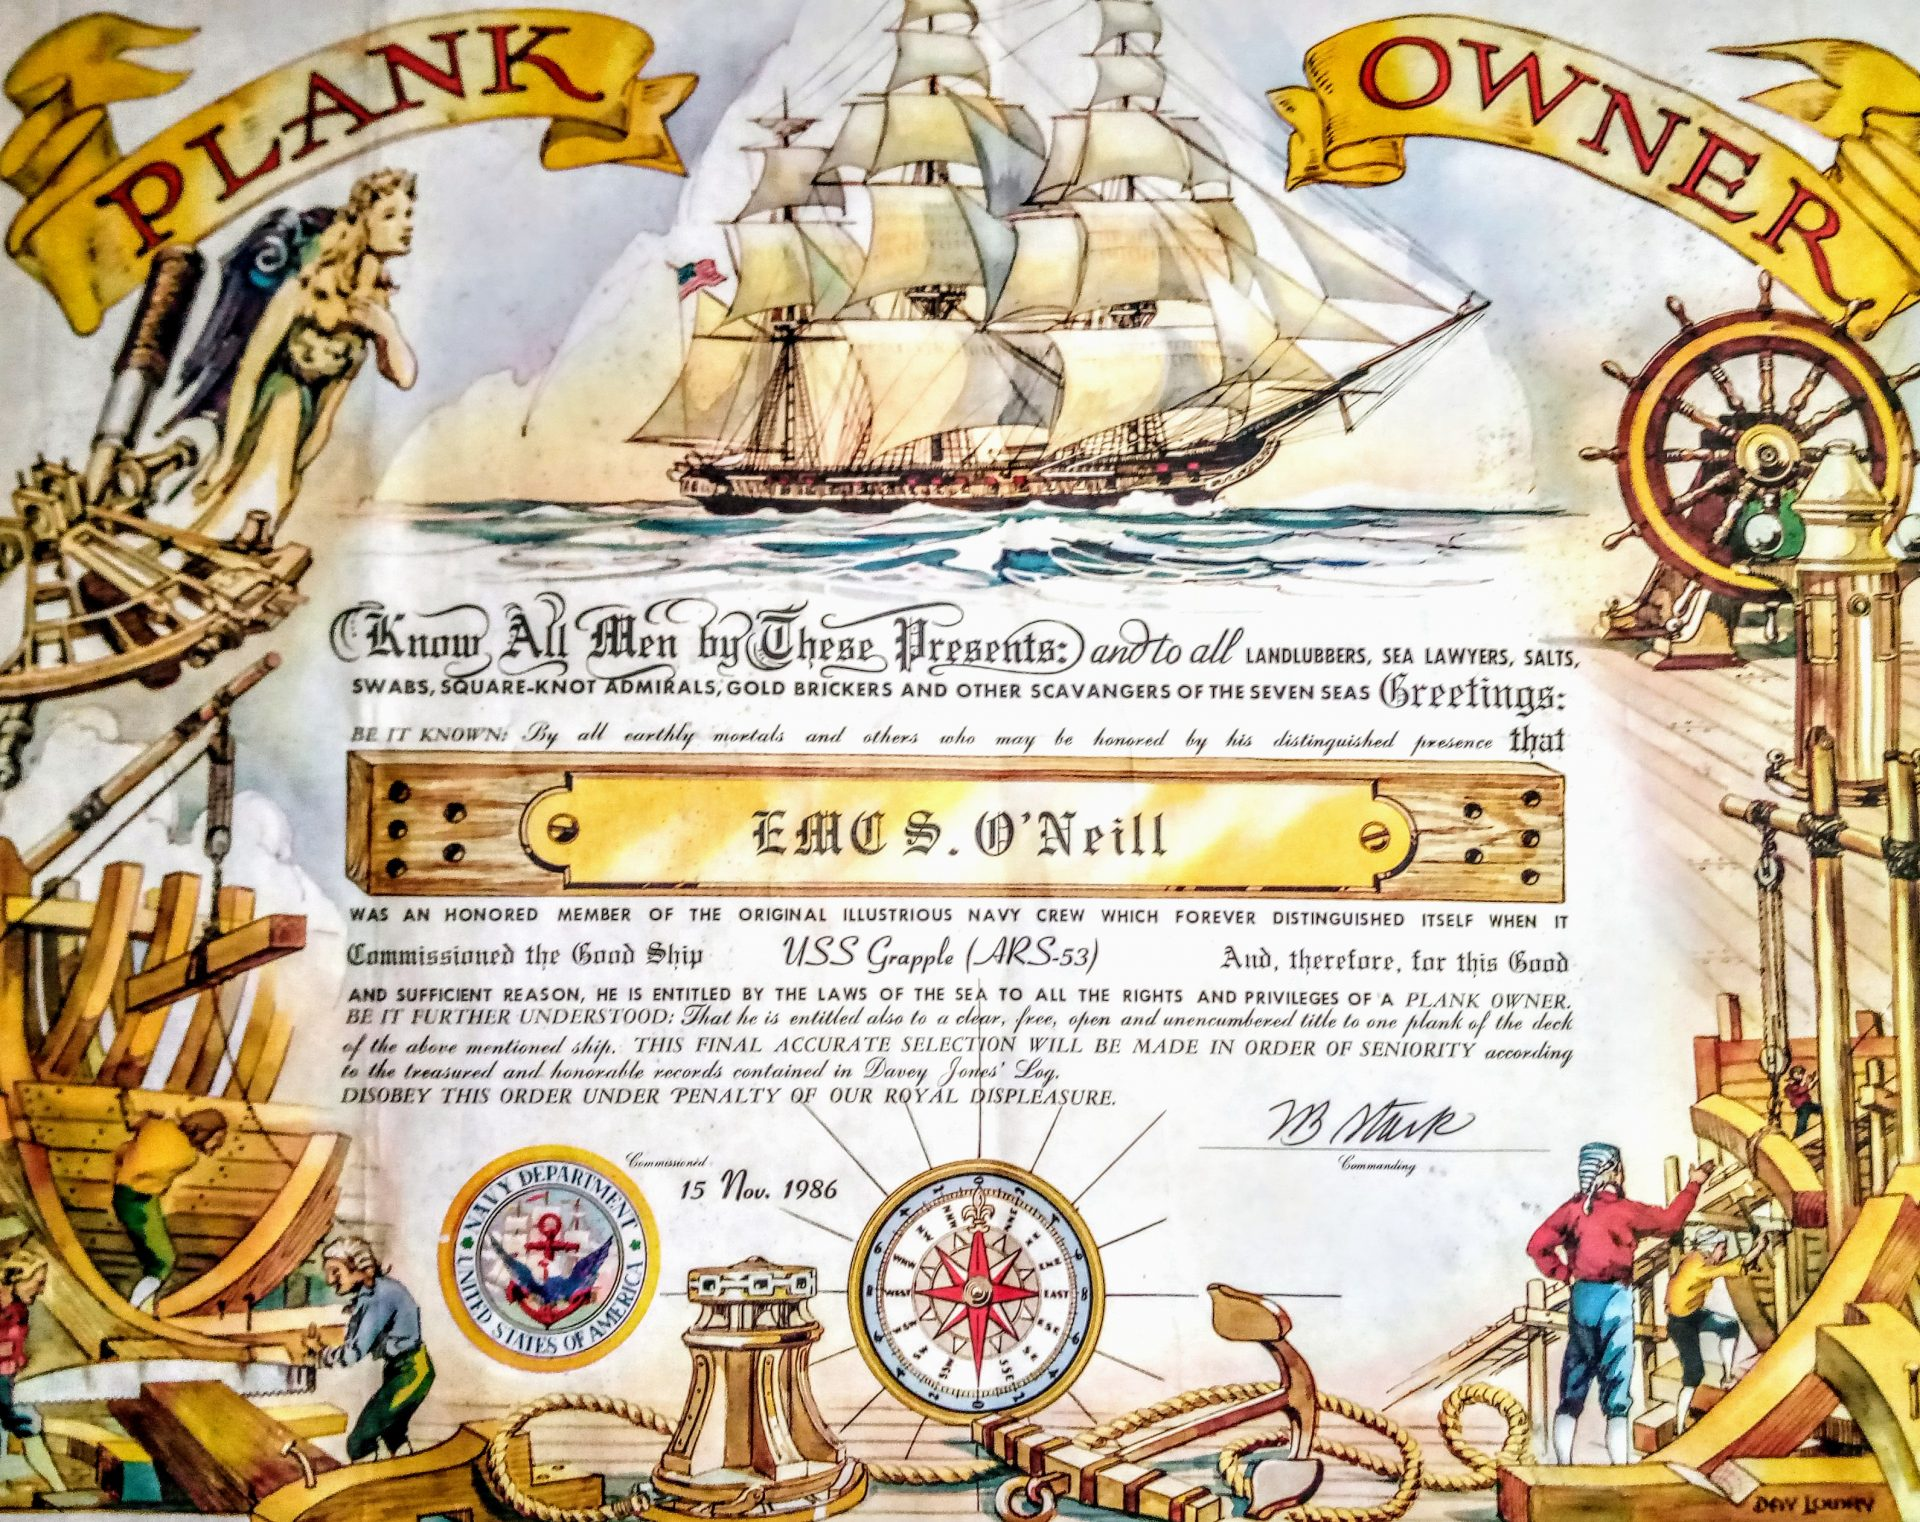 My father was what the Navy calls a Plank Owner, meaning he was a member of a ship's first crew. It is a big deal to help commission a Navy vessel and I am pretty sure dad did it for at least two ships. This is his certificate for the U.S.S. Grapple. He spent weeks in Wisconsin, assisting in the submarine tender's launch. I went to visit and spent a week with dad in Sturgeon Bay. It was a blast. I got to tour the ship, we went to a fish boil, we drove all around the peninsula and I got to see a part of the country I had never seen before. My father always ignited in me a deep curisorty about the world and a sense of adventure. I remember when I was a very young kid-7 or 8-dad had purchased a set encyclopedias for the house. I remember laying in the hallway and reading those books from cover to cover and later talking to dad about what I had discovered. Thank you, dad, for all your inspiration.